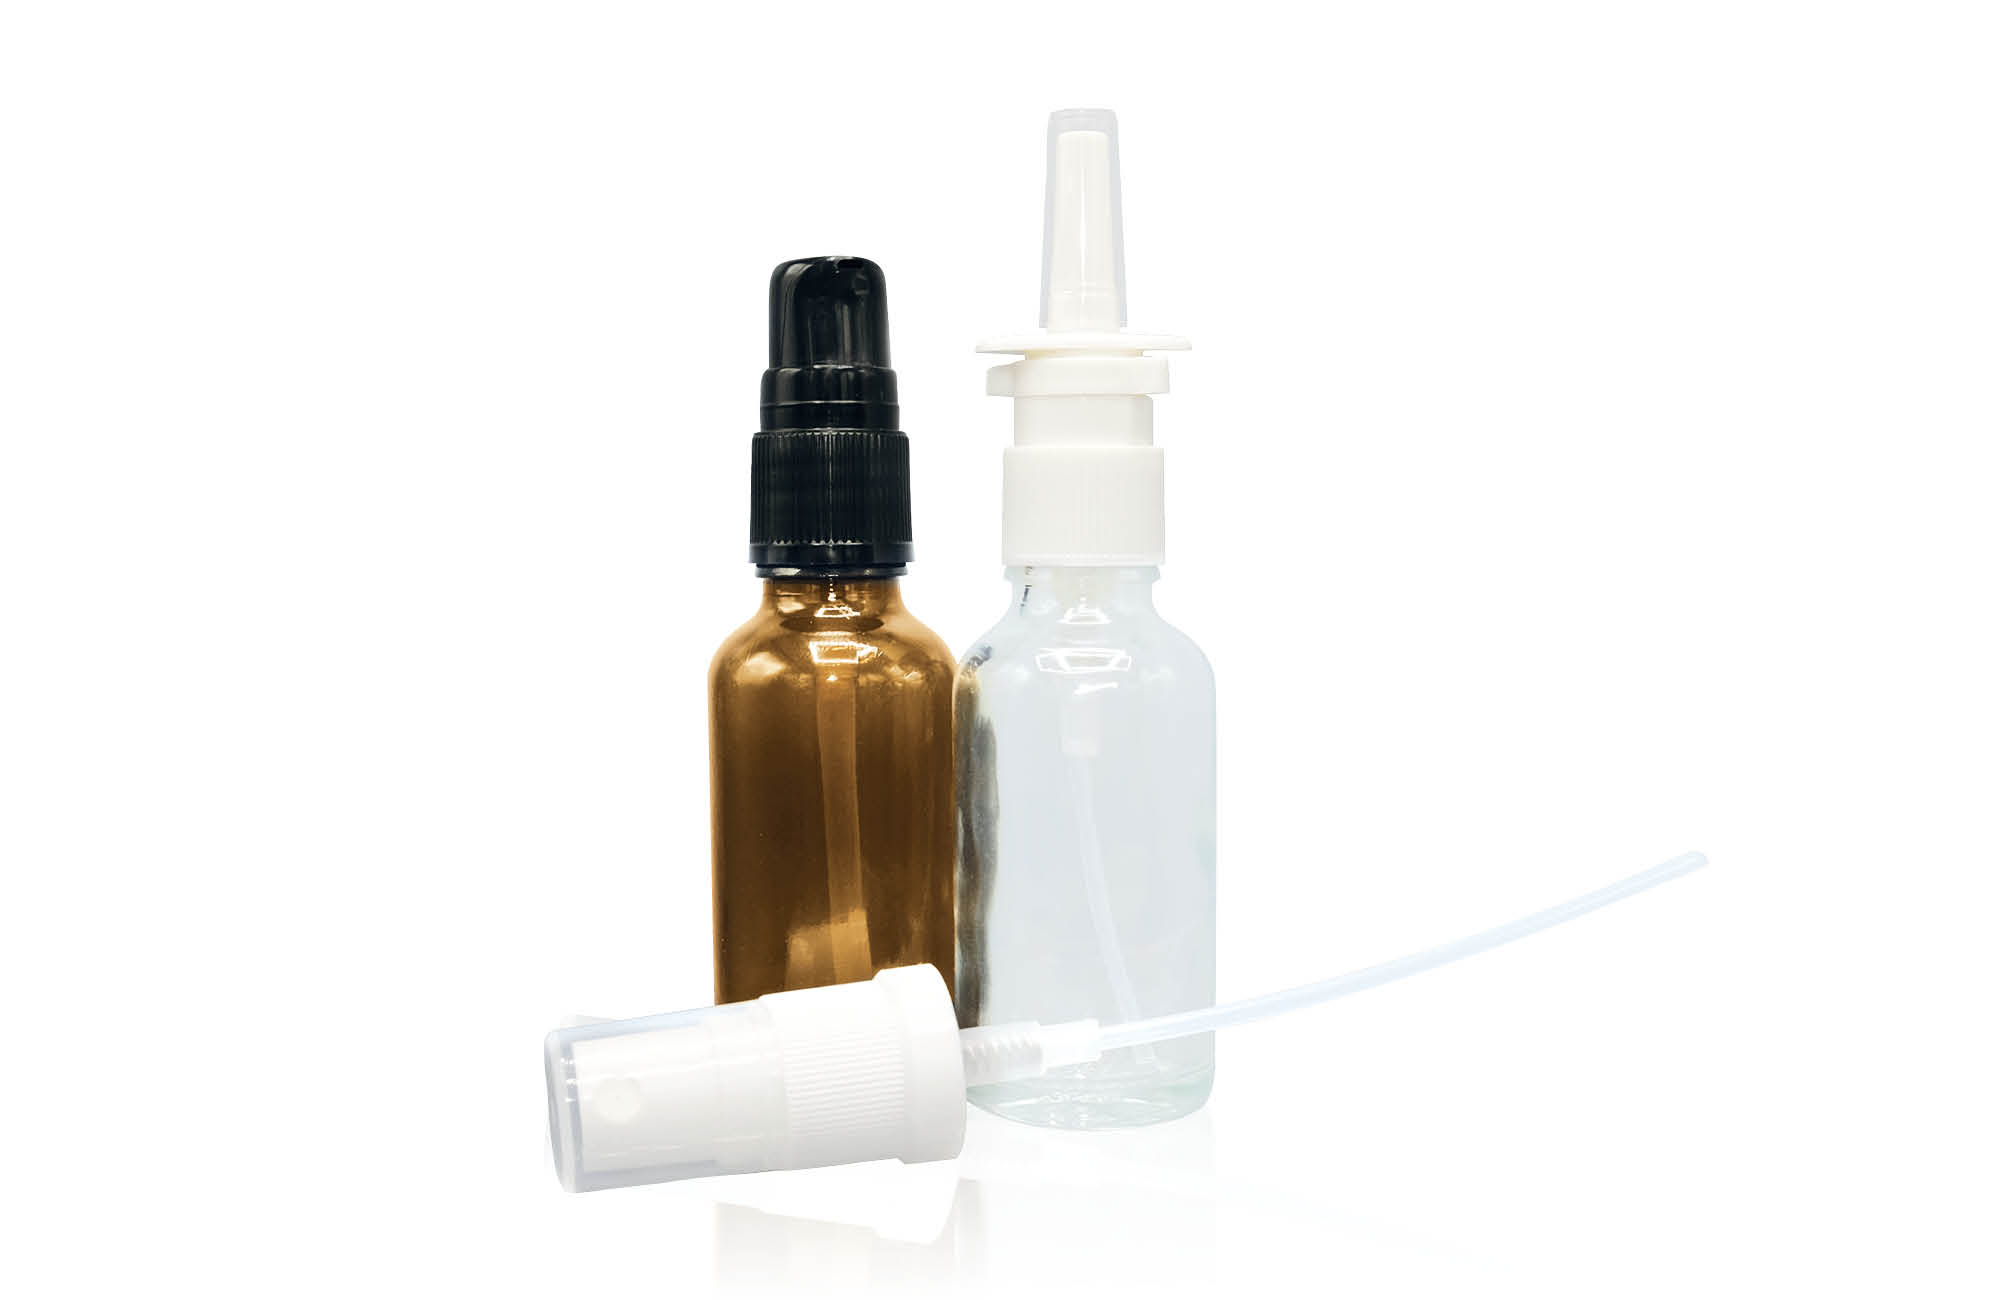 Pump system atomizer with a flint and amber dropper bottle